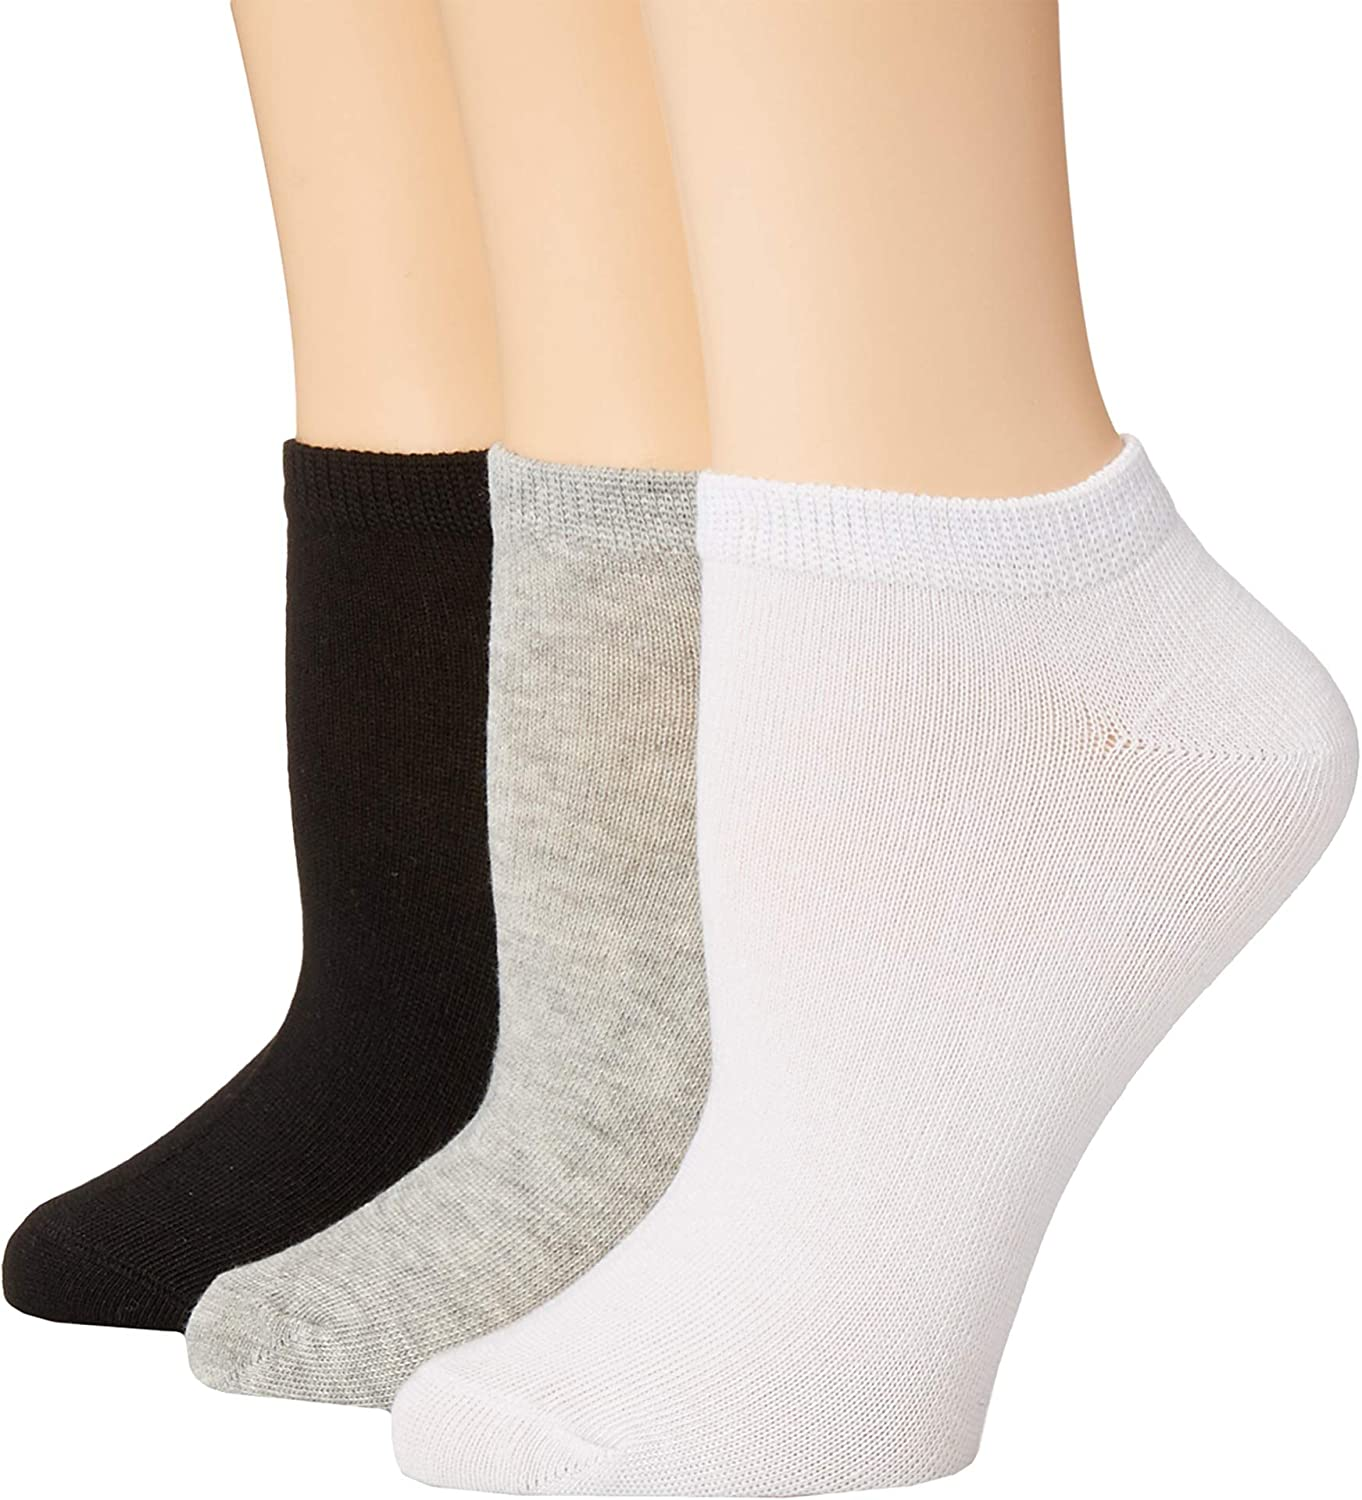 Betsey Johnson Womens 10Pack Solid Low Cut Socks